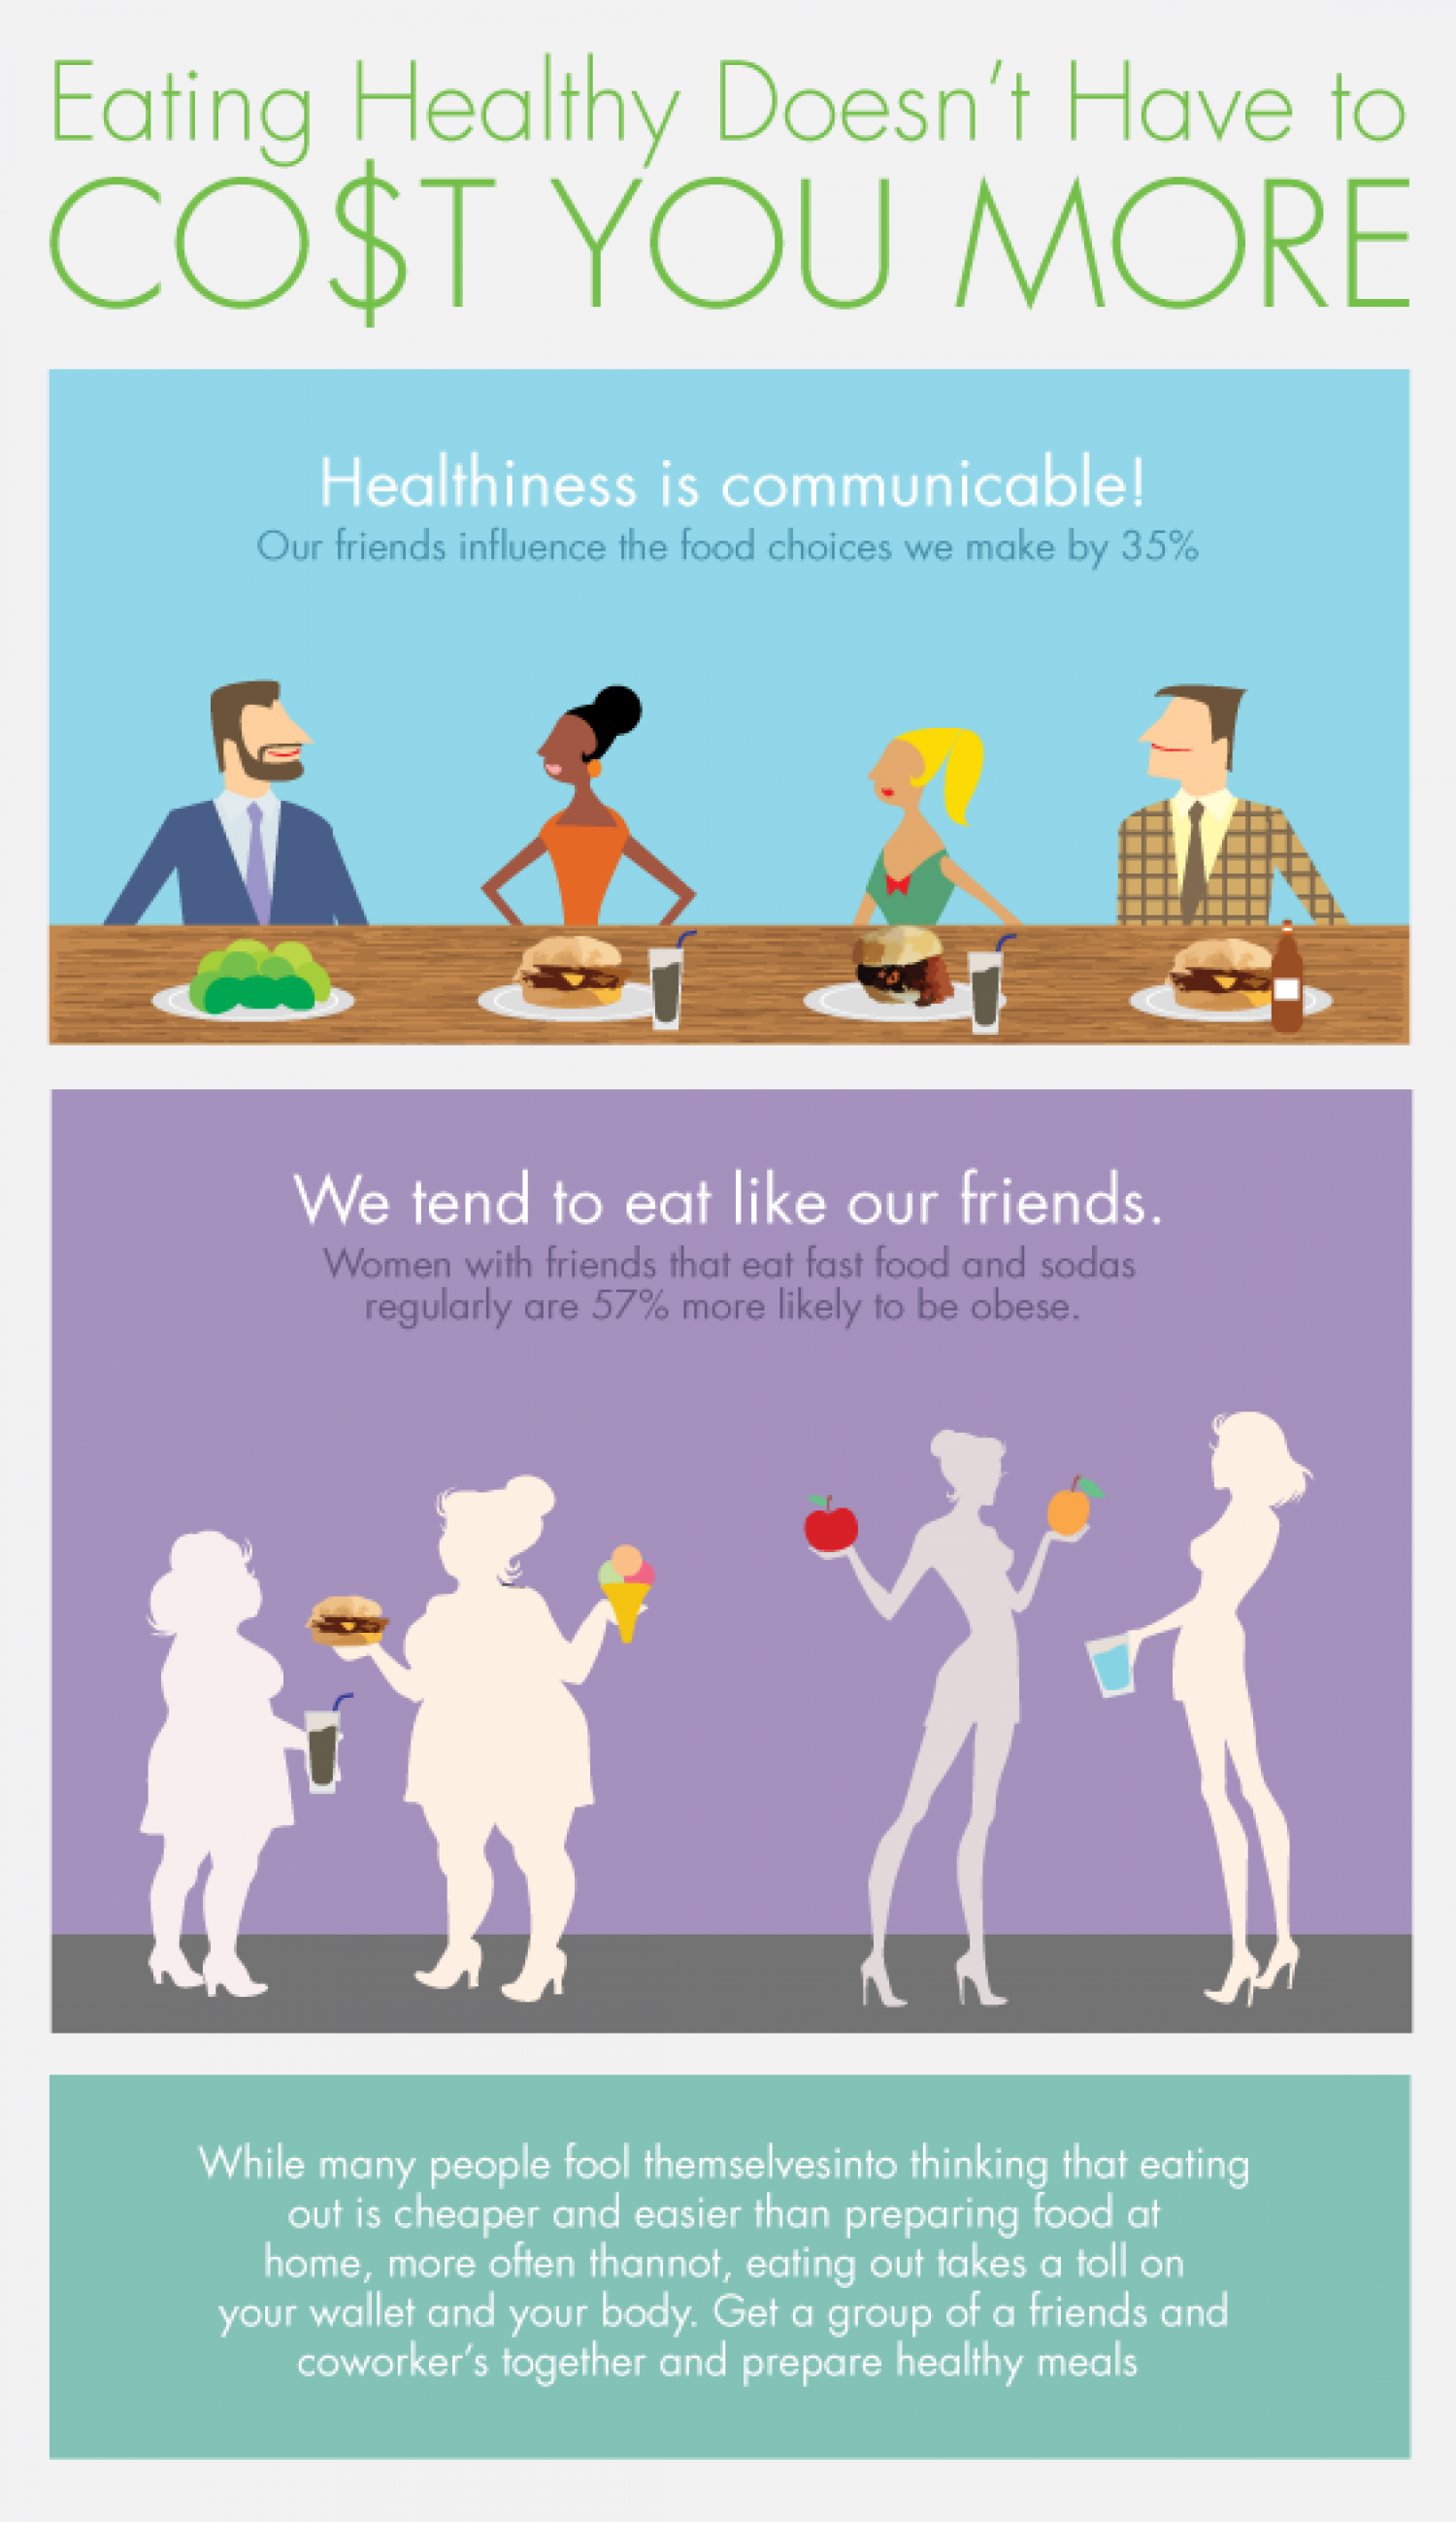 Eating Healthy Doesn't Have to Cost You More Infographic